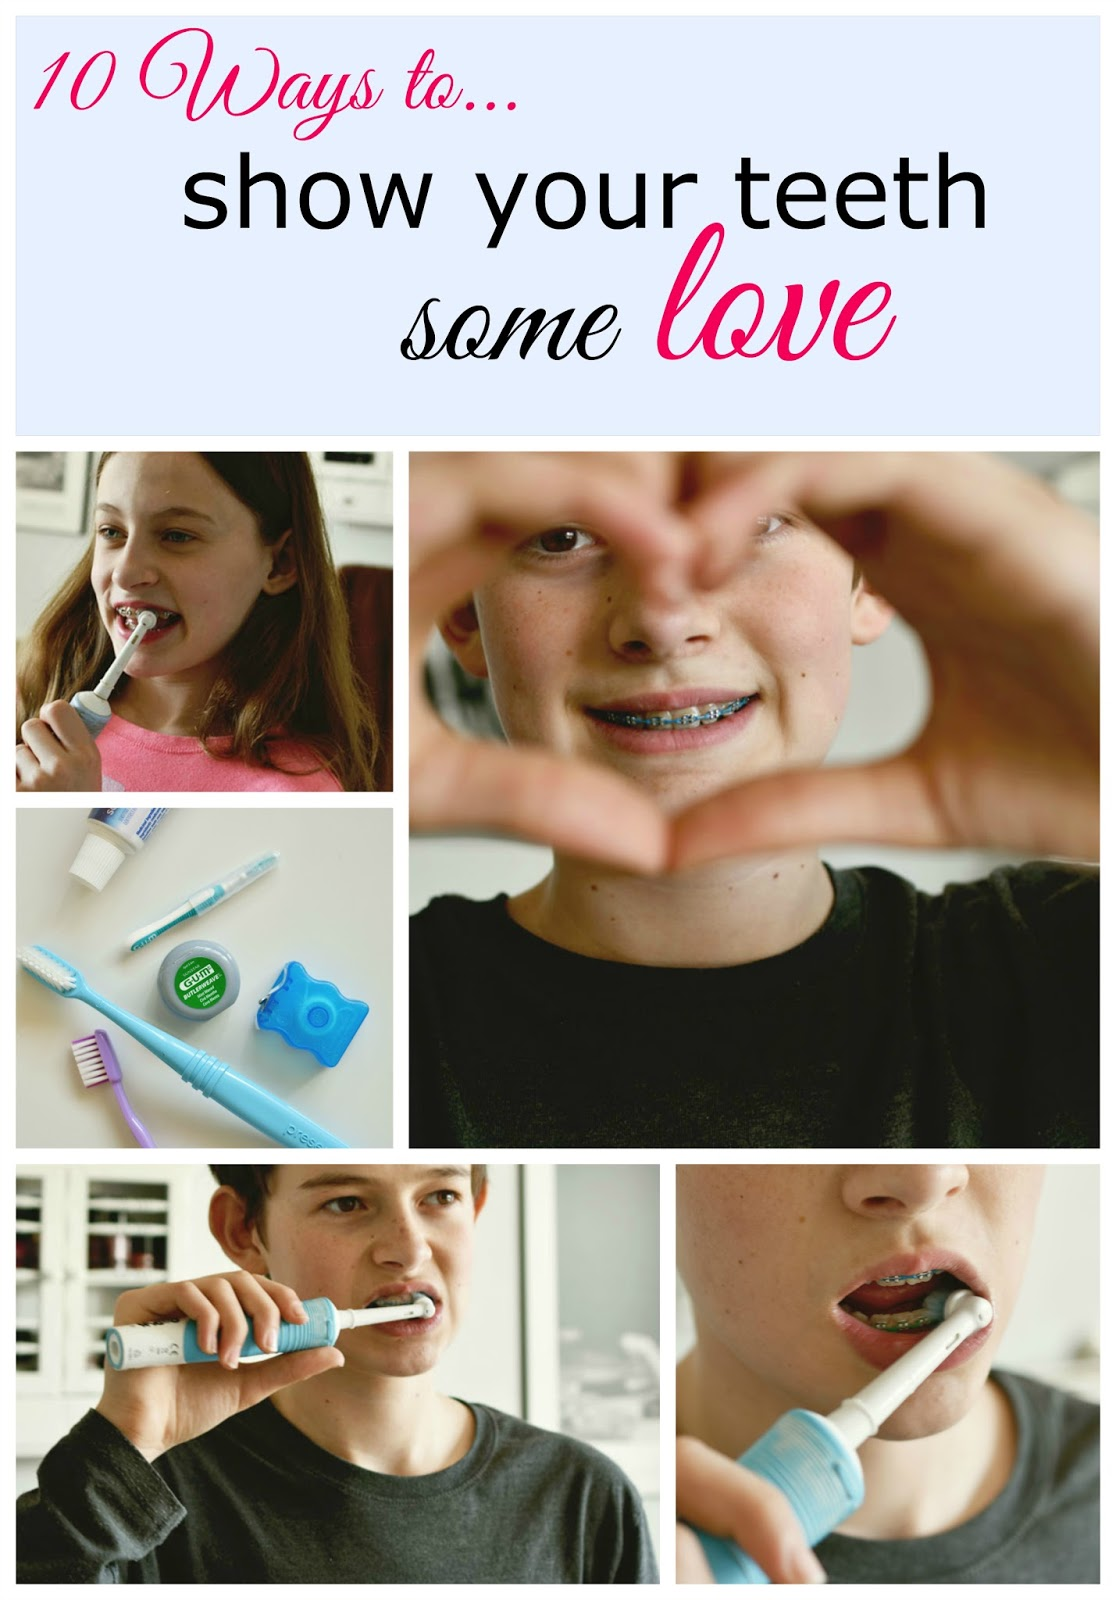 How Much Do You Love Your Teeth? Here are 10 easy ways to show them you care!